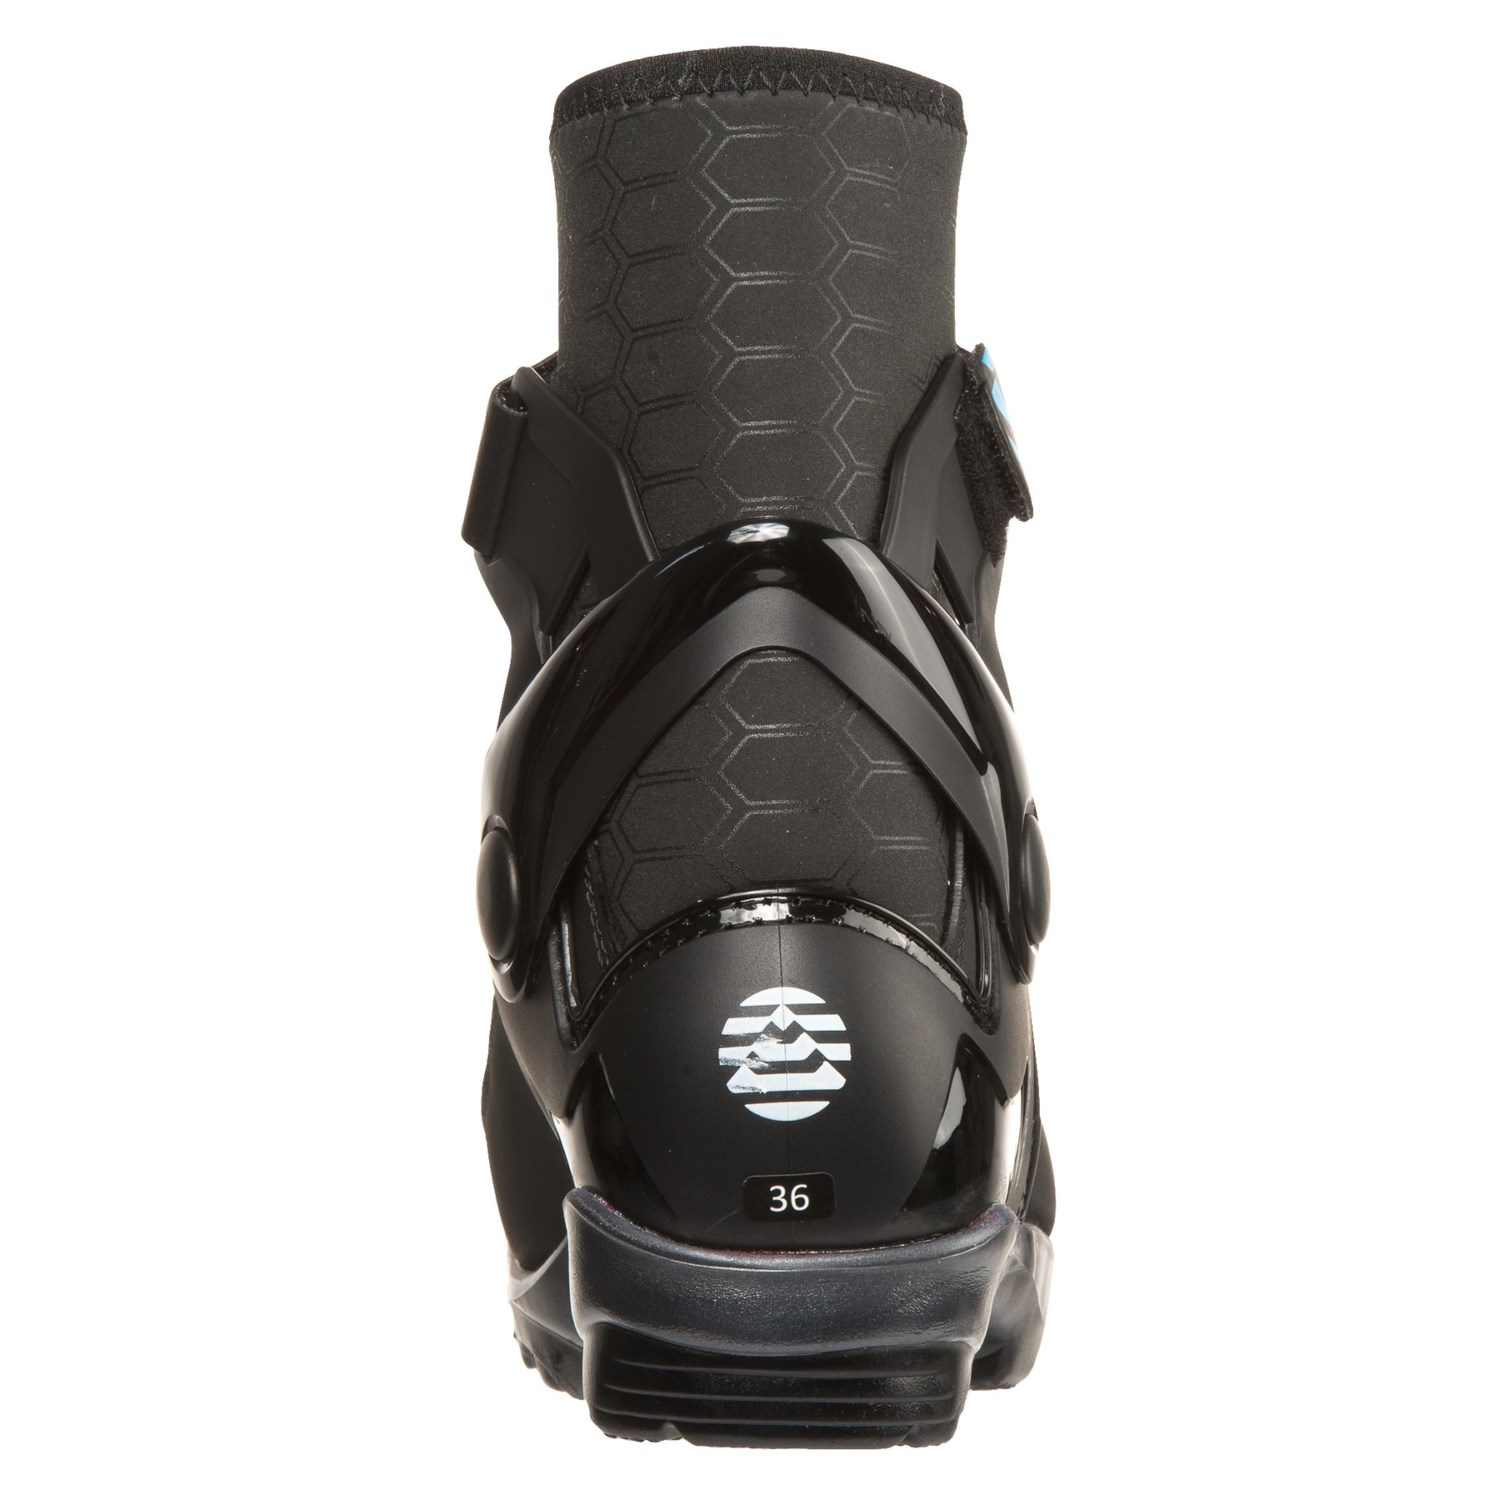 Alpina Outlander Eve Backcountry Nordic Ski Boots For